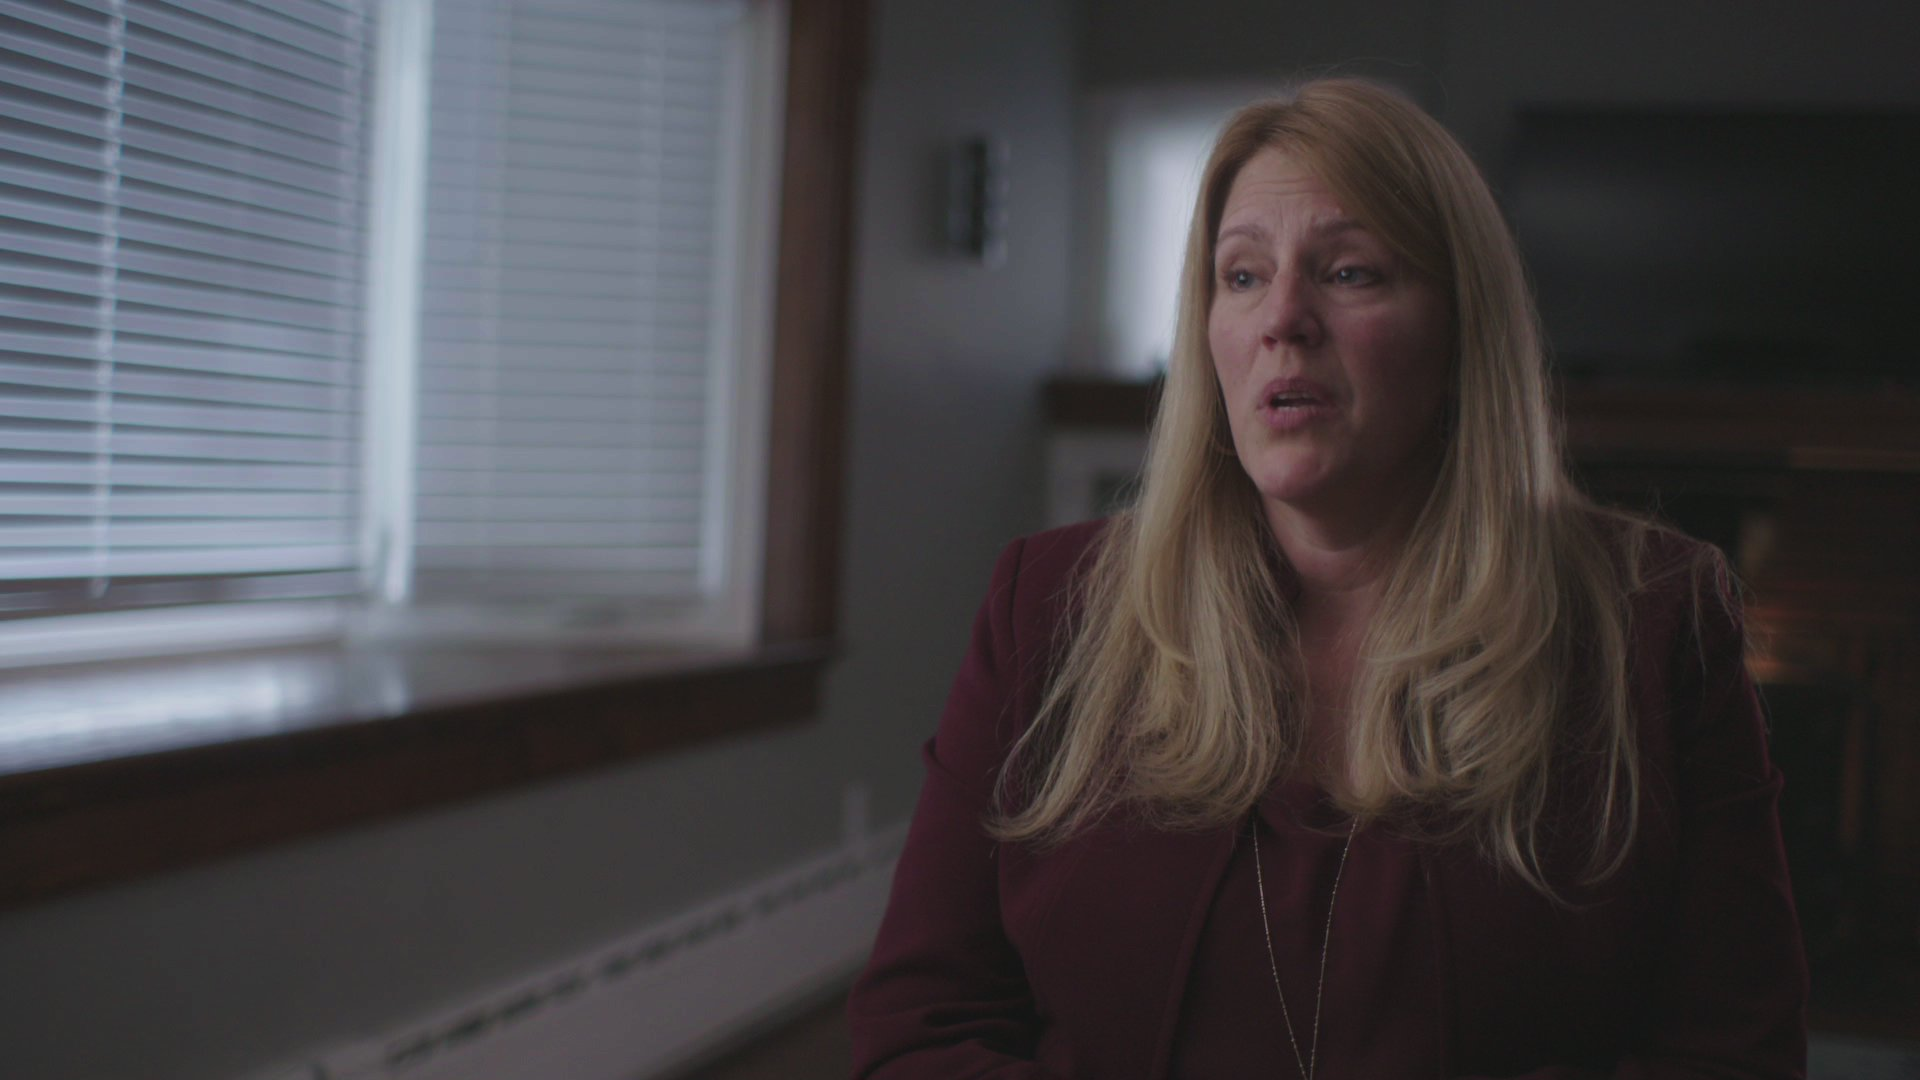 Loni Metter Learns David Metter's Ex-Wife Hired a Hit Man to Kill Him